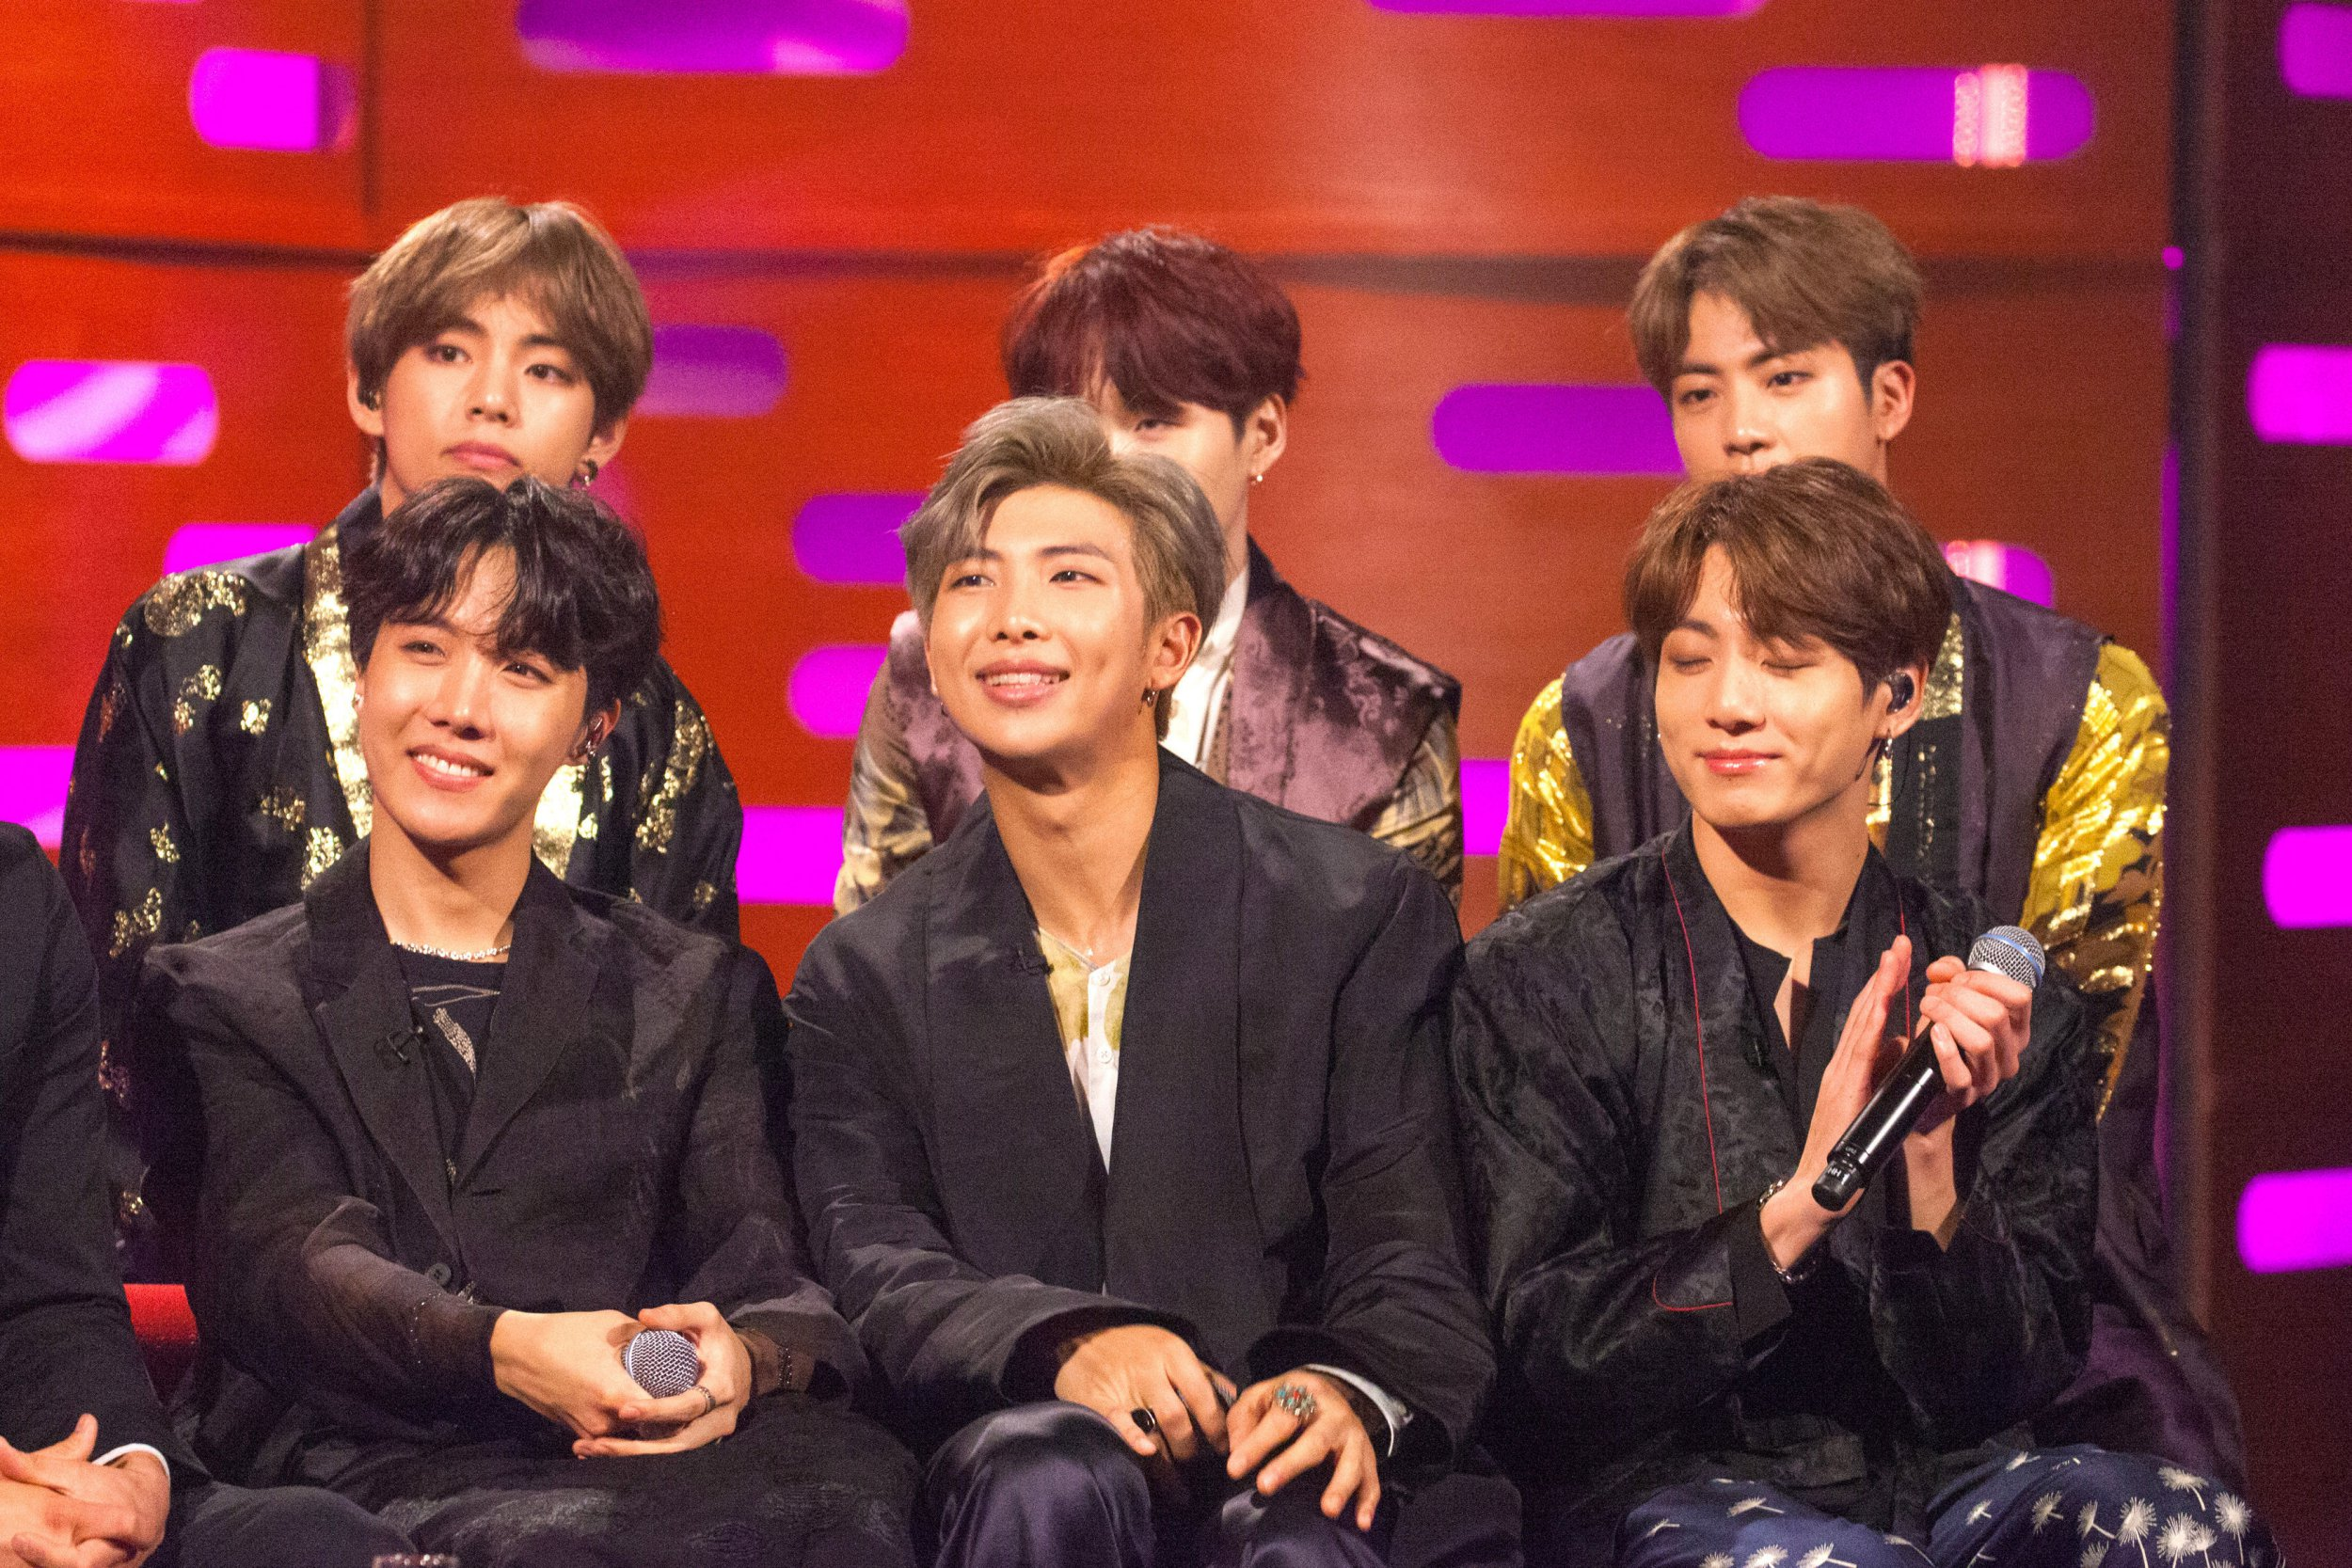 Boyband BTS during the filming of the Graham Norton Show at BBC Studioworks 6 Television Centre, Wood Lane, London, to be aired on BBC One on Friday evening. PRESS ASSOCIATION Photo. Picture date: Thursday October 11, 2018. Photo credit should read: PA Images on behalf of So TV